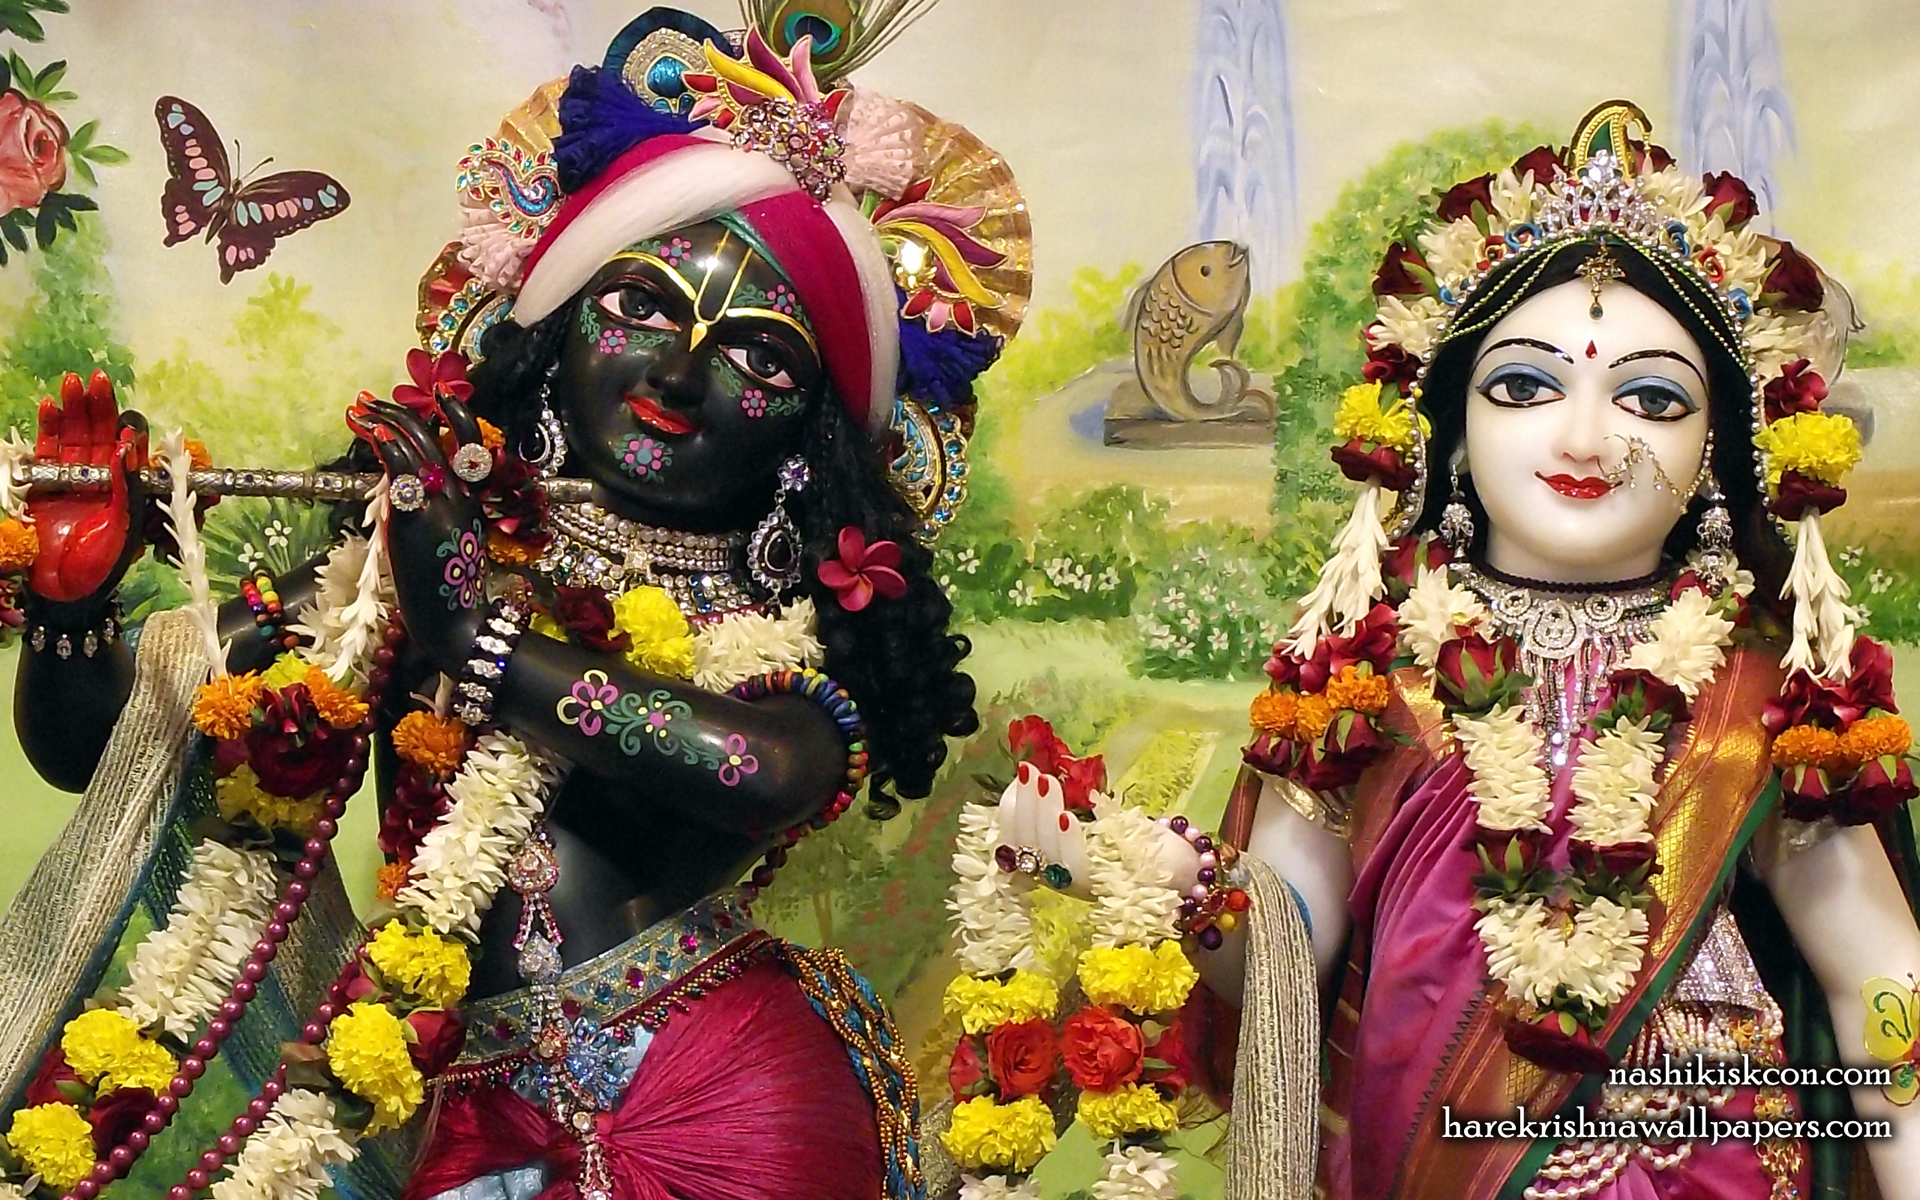 Sri Sri Radha Madan Gopal Close up Wallpaper (009) Size 1920x1200 Download